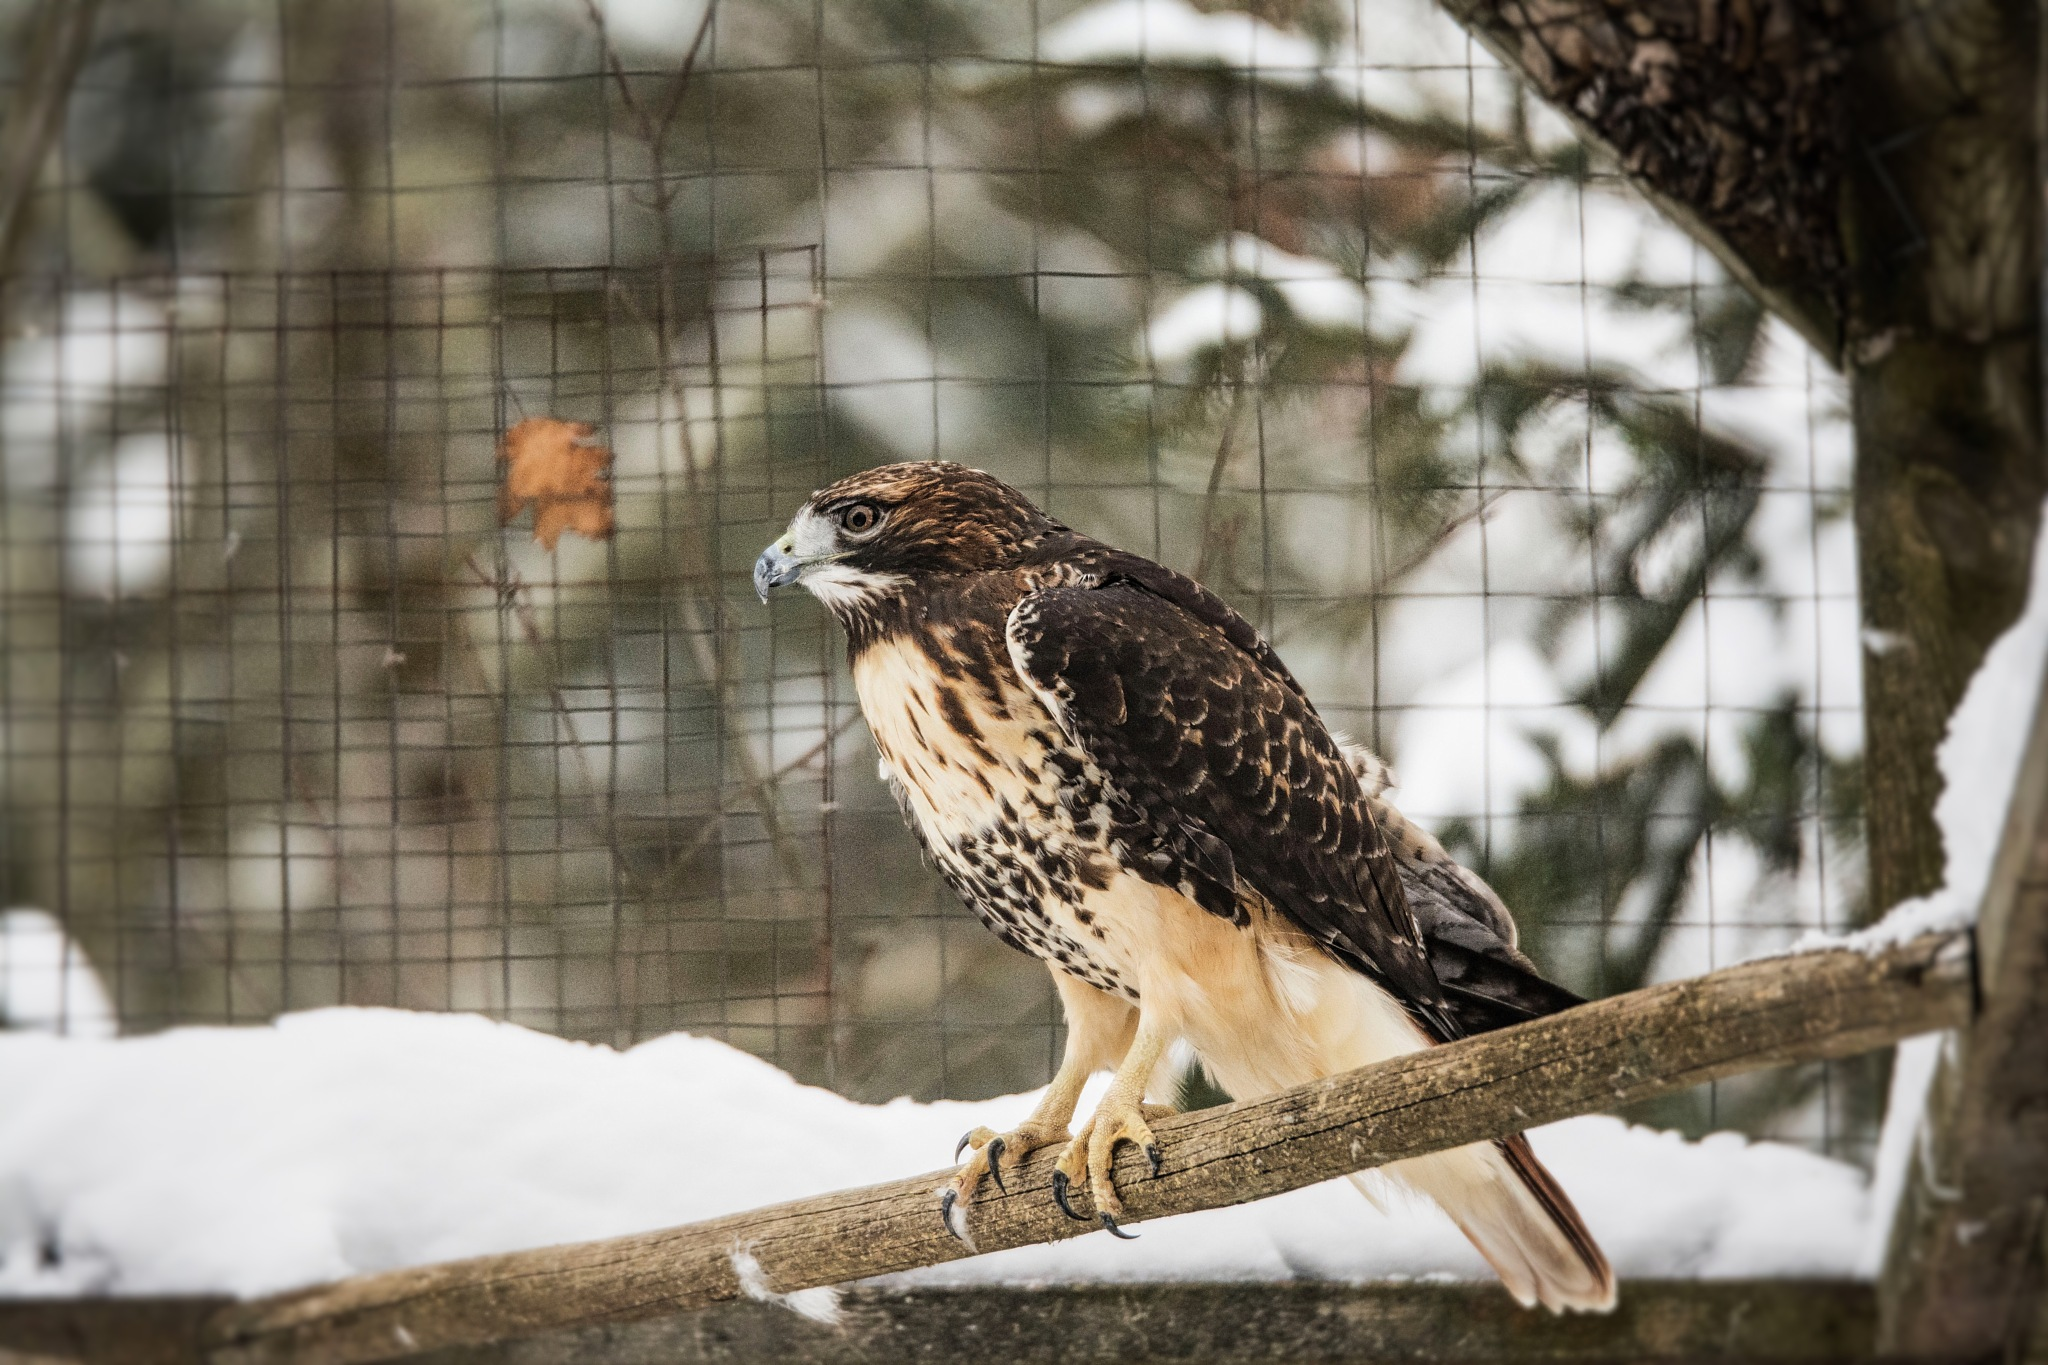 Red Tailed Hawk in Captivity  by Wayne L. Talbot